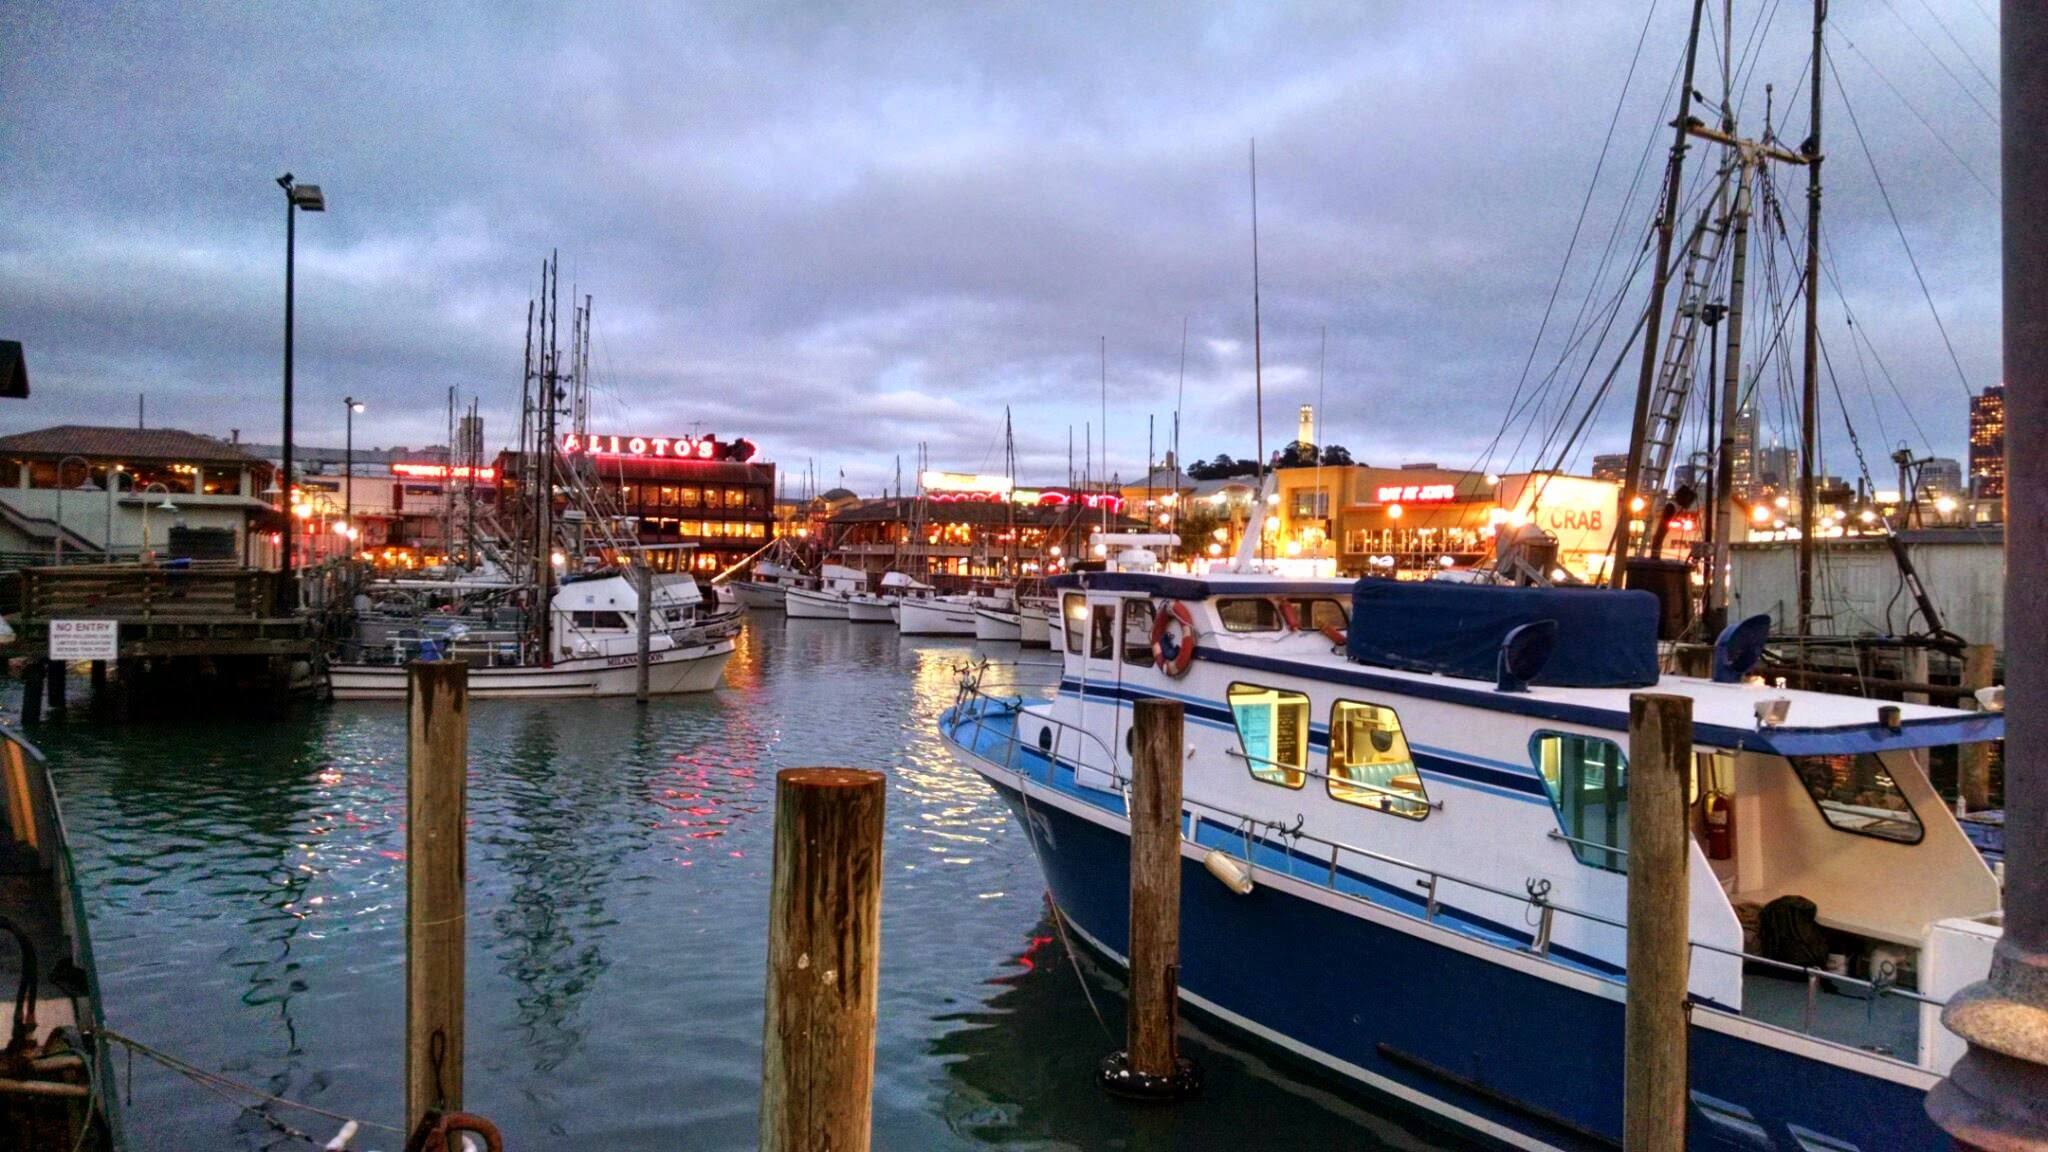 BLICK_Clam_Chowder_San_Francisco_PHOTO8 (1)